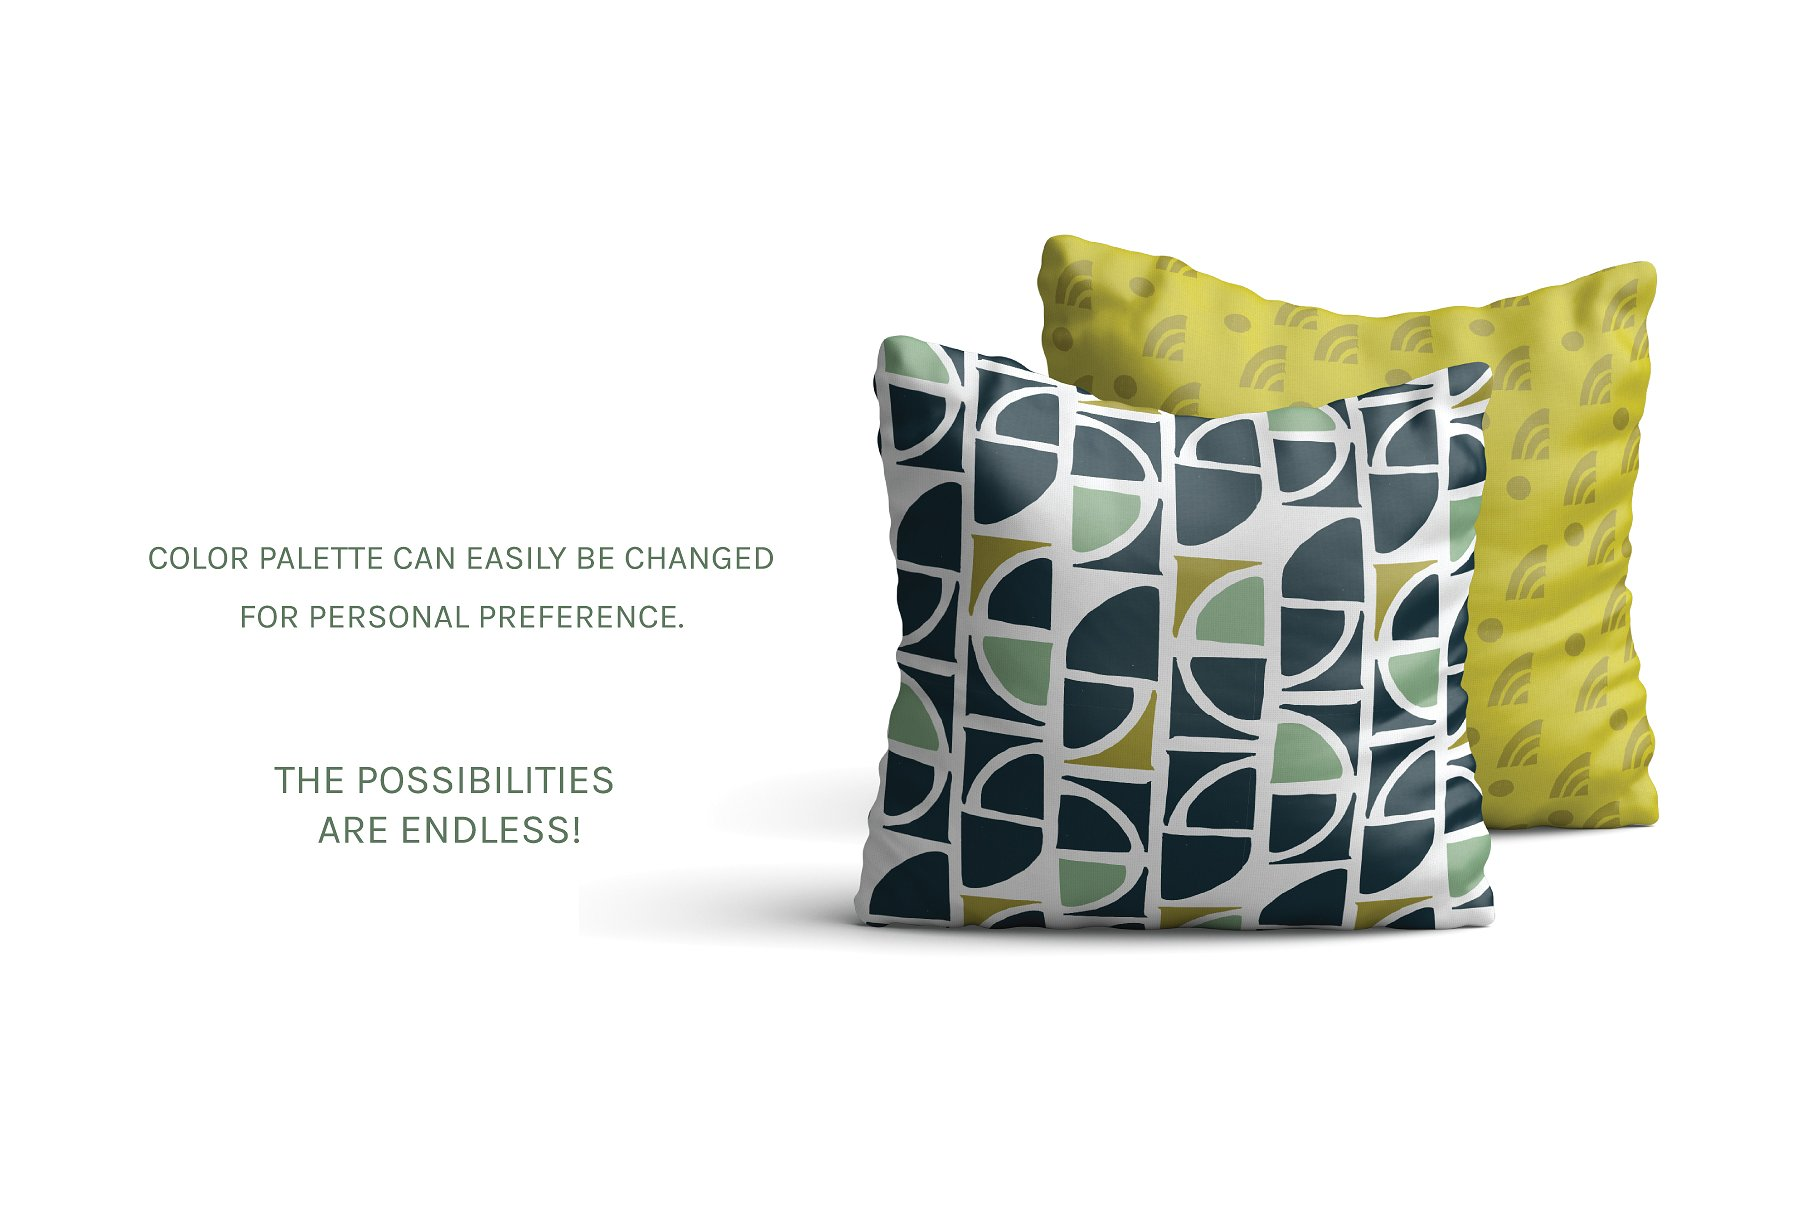 minted-modern_product-images-04-.jpg